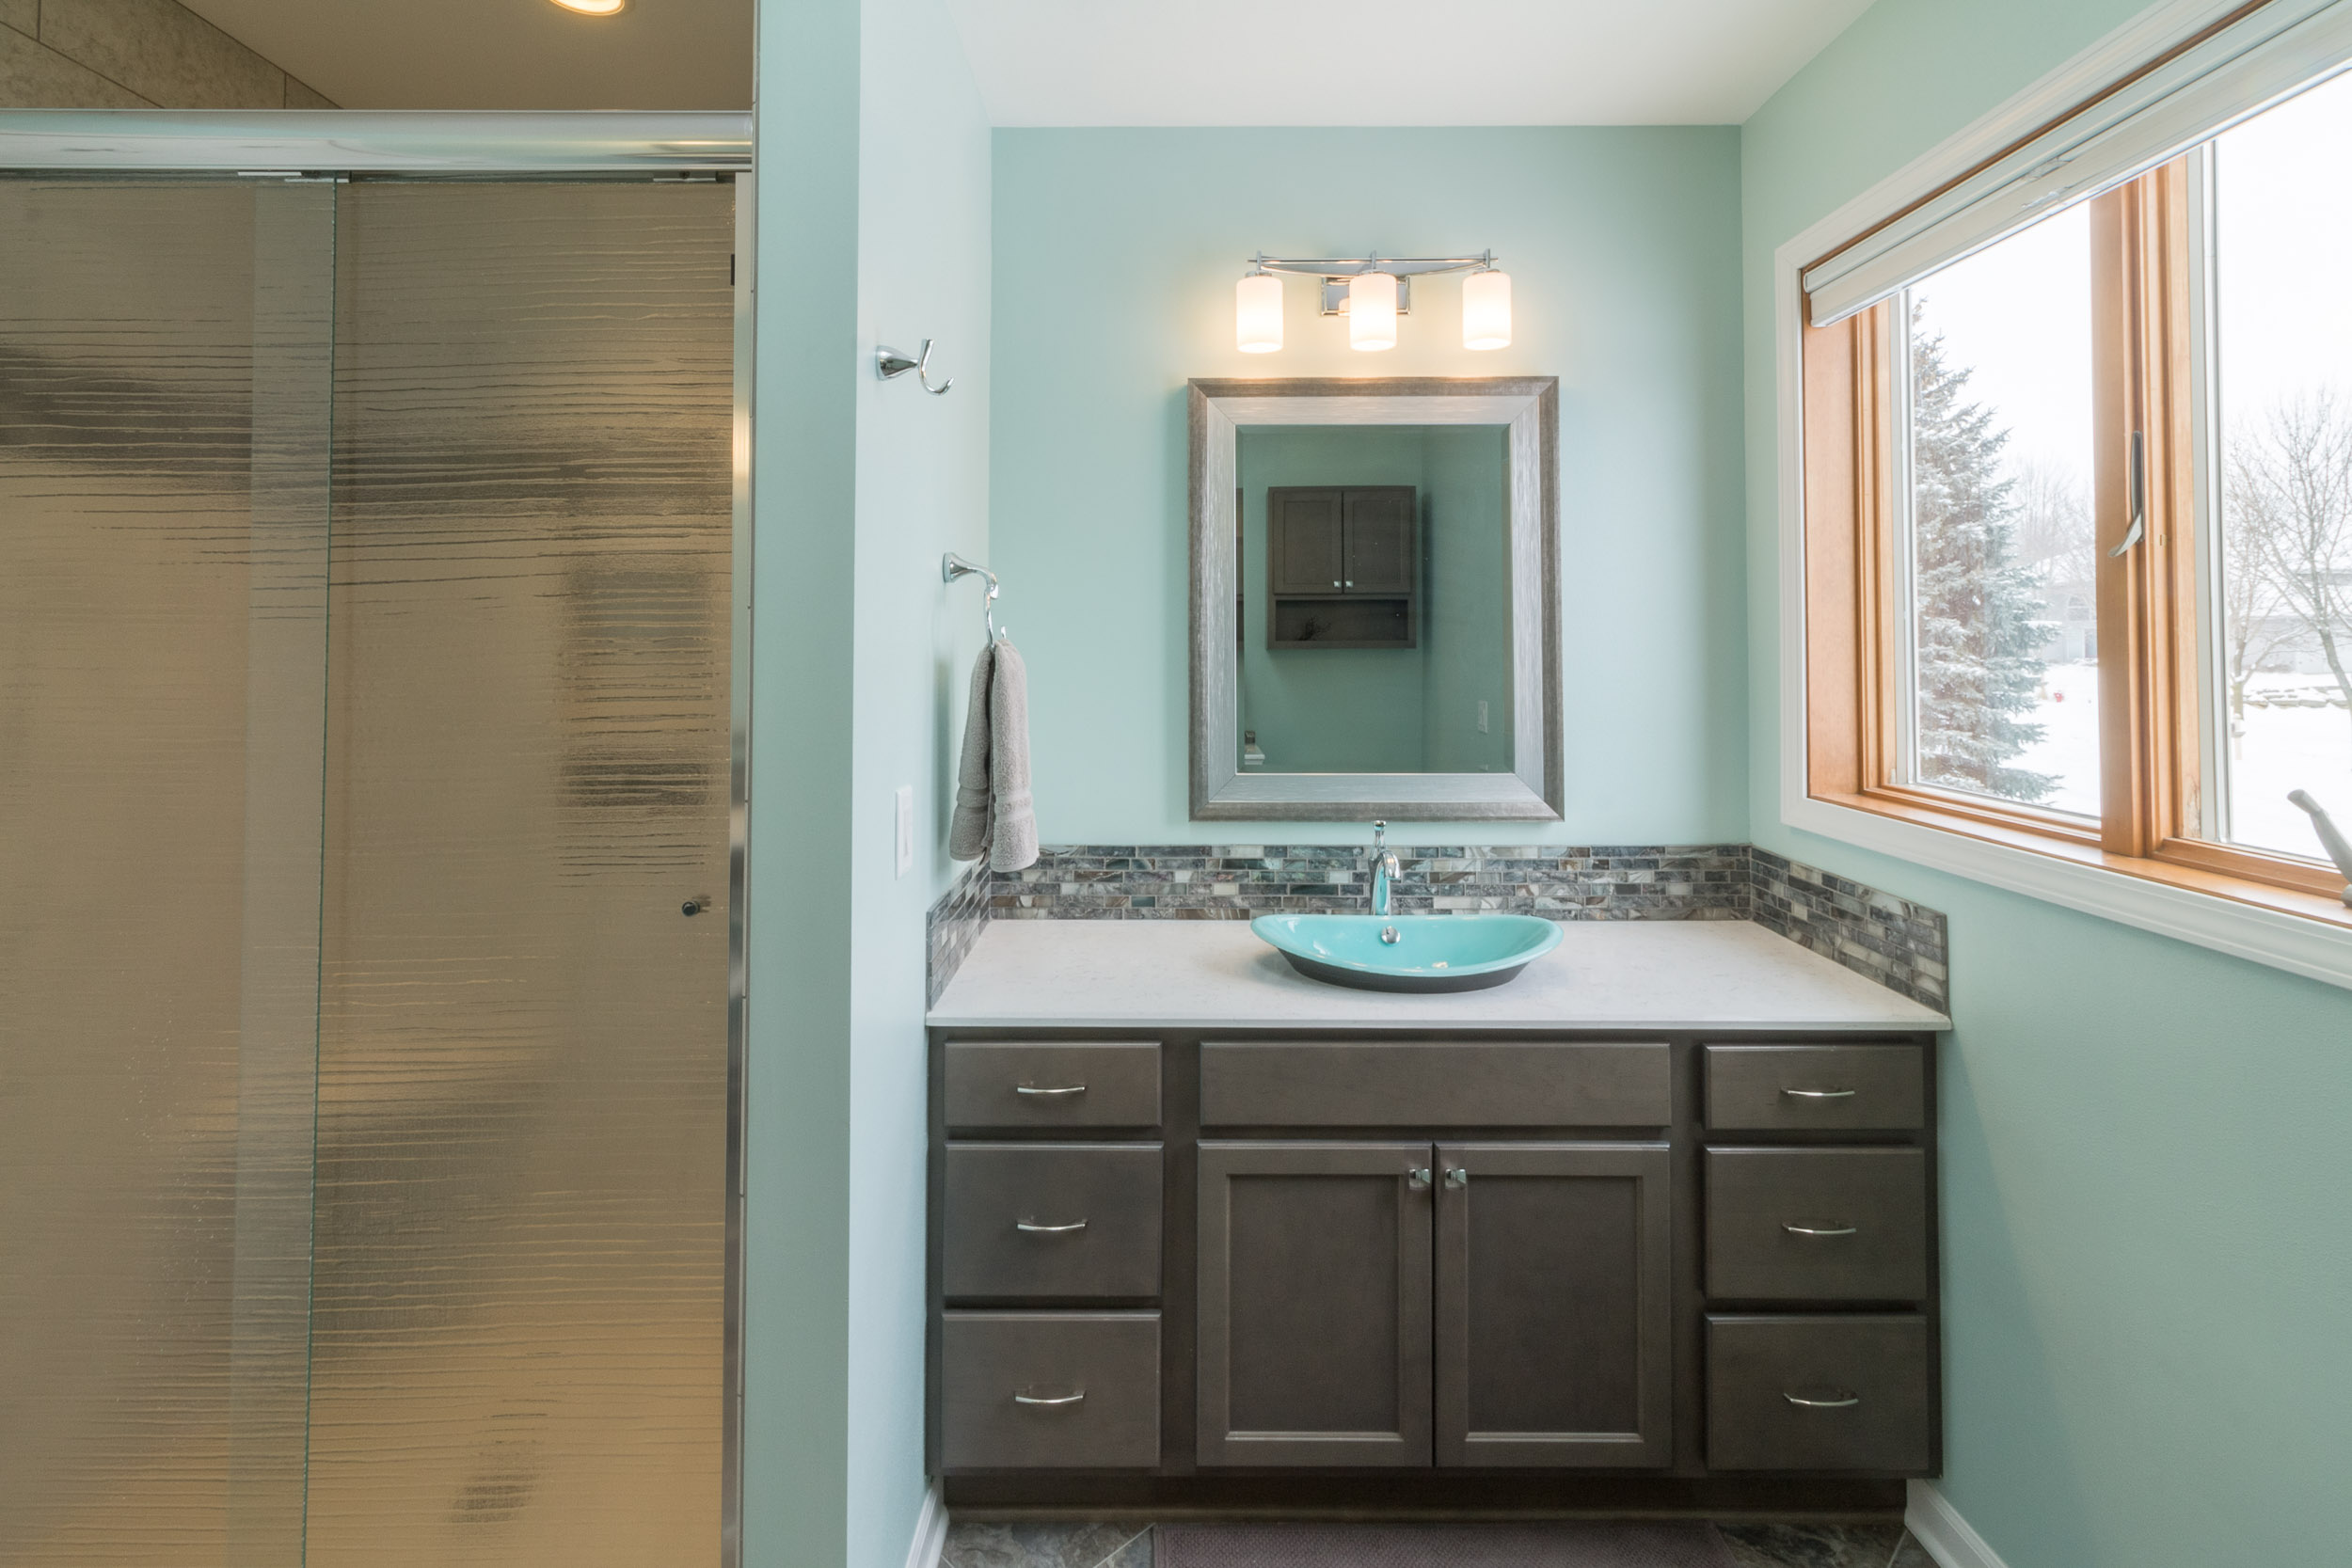 The Second Vanity In This Bathroom Remodel.